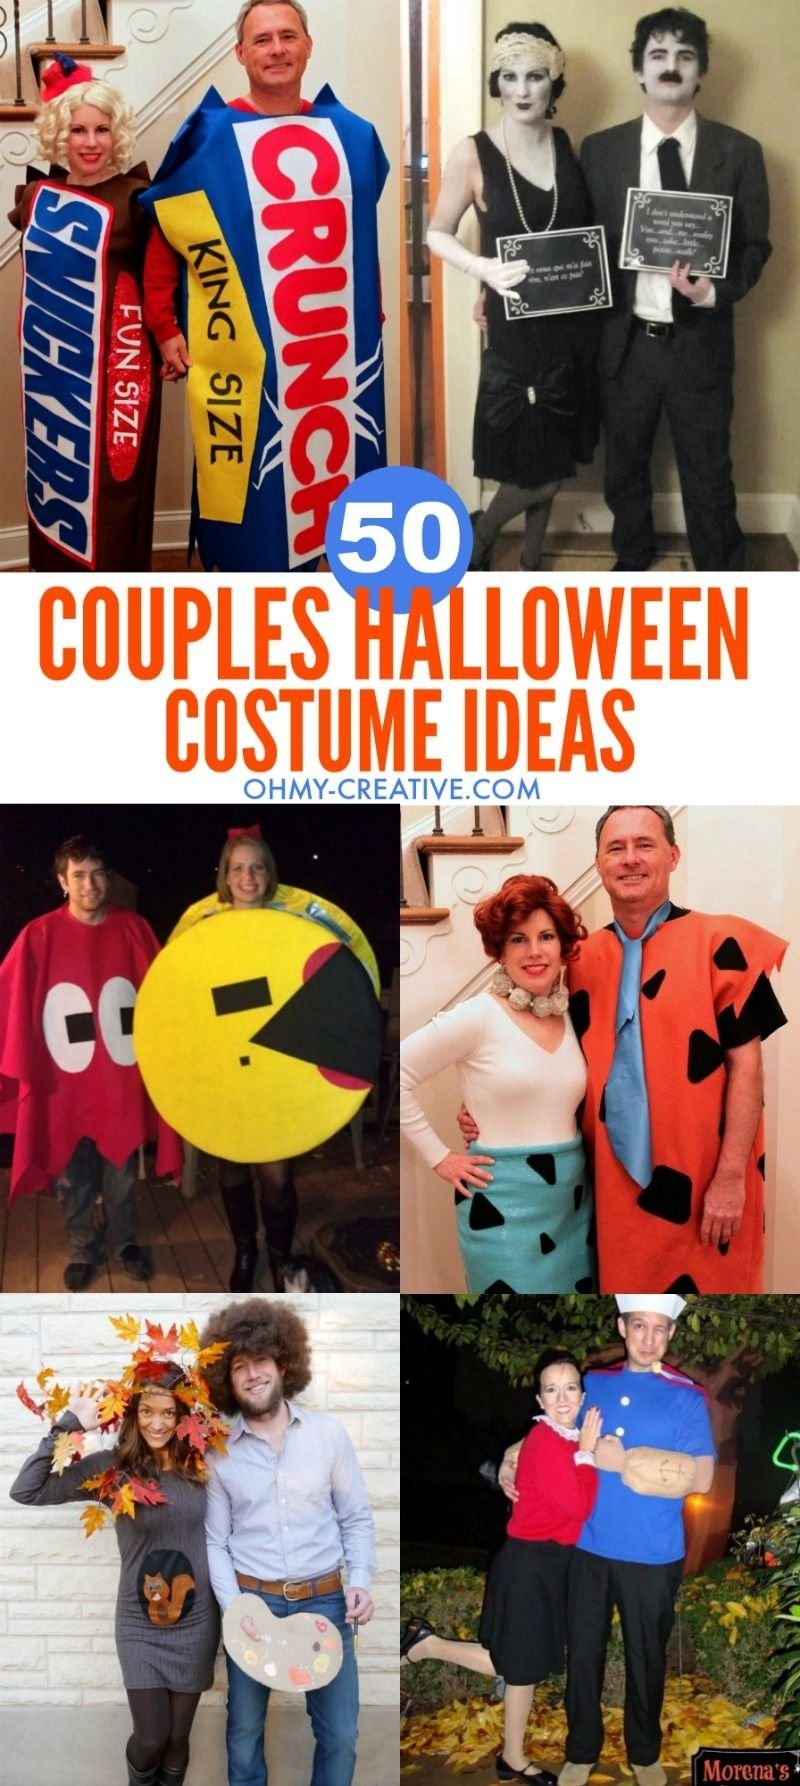 10 Elegant His And Her Costume Ideas 50 couples halloween costume ideas couples costumes adult couple  sc 1 st  Unique Ideas 2018 & 10 Elegant His And Her Costume Ideas